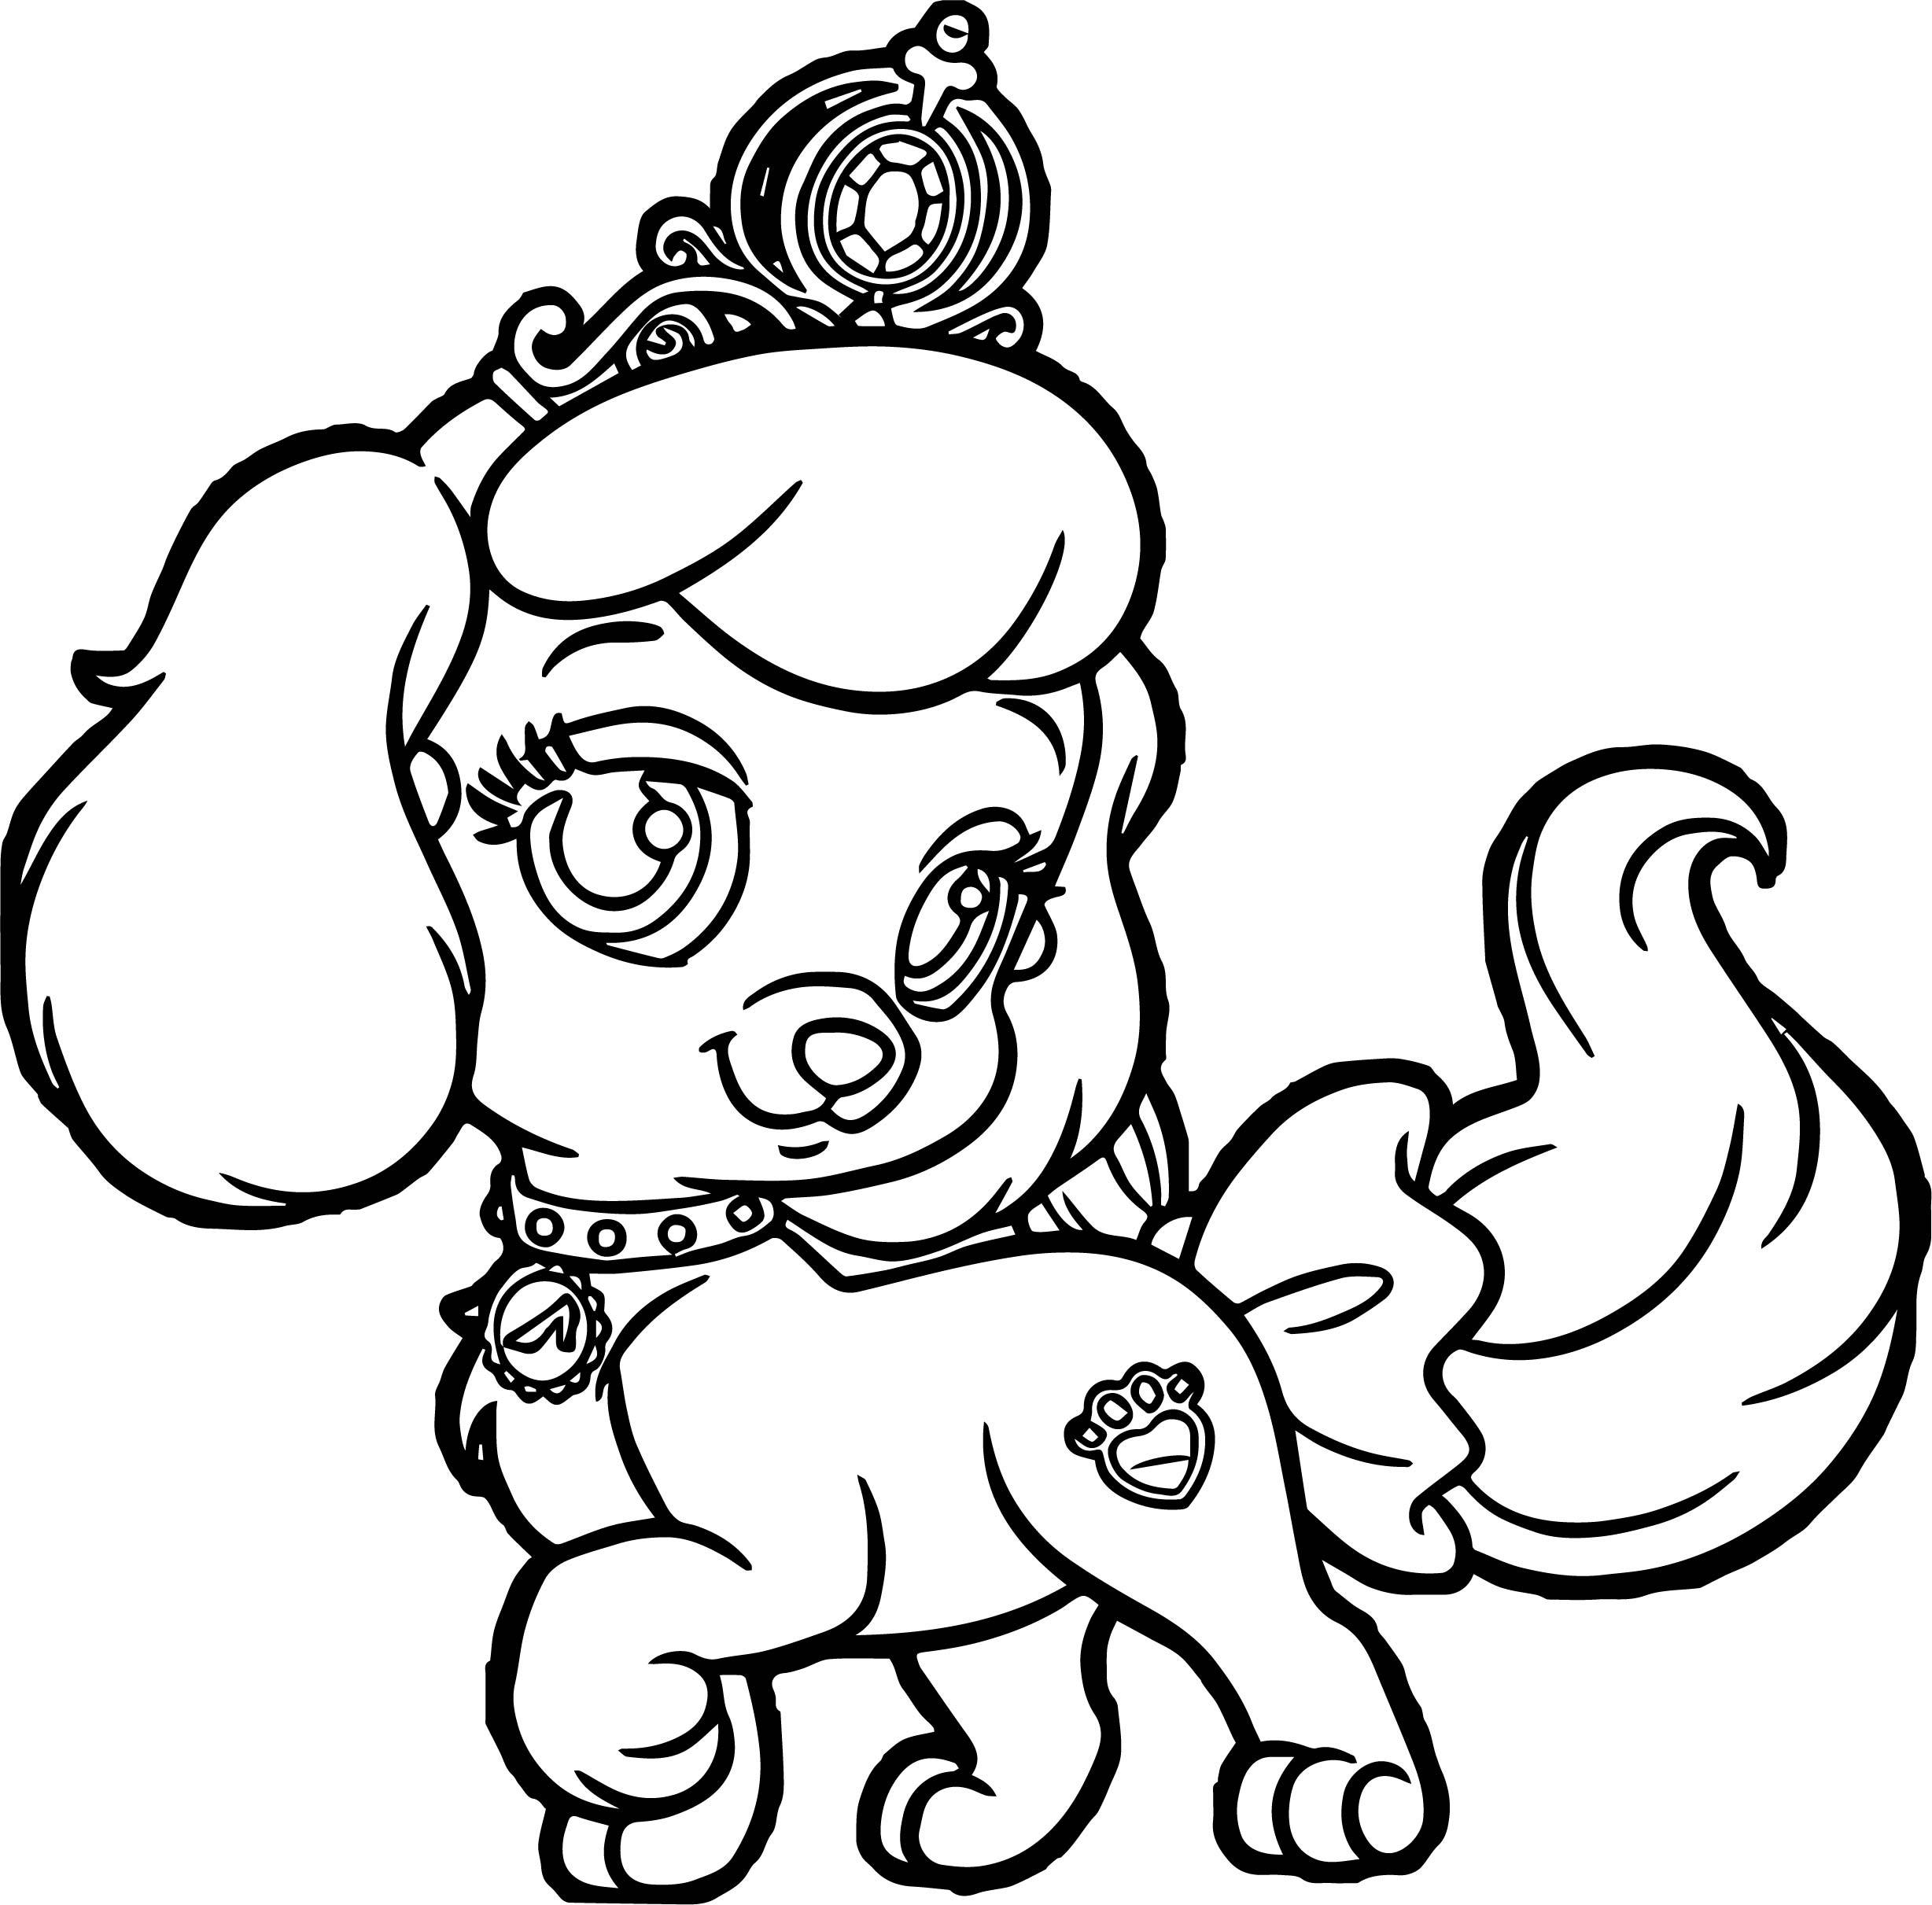 dogs coloring pictures cute dog coloring pages to download and print for free dogs coloring pictures